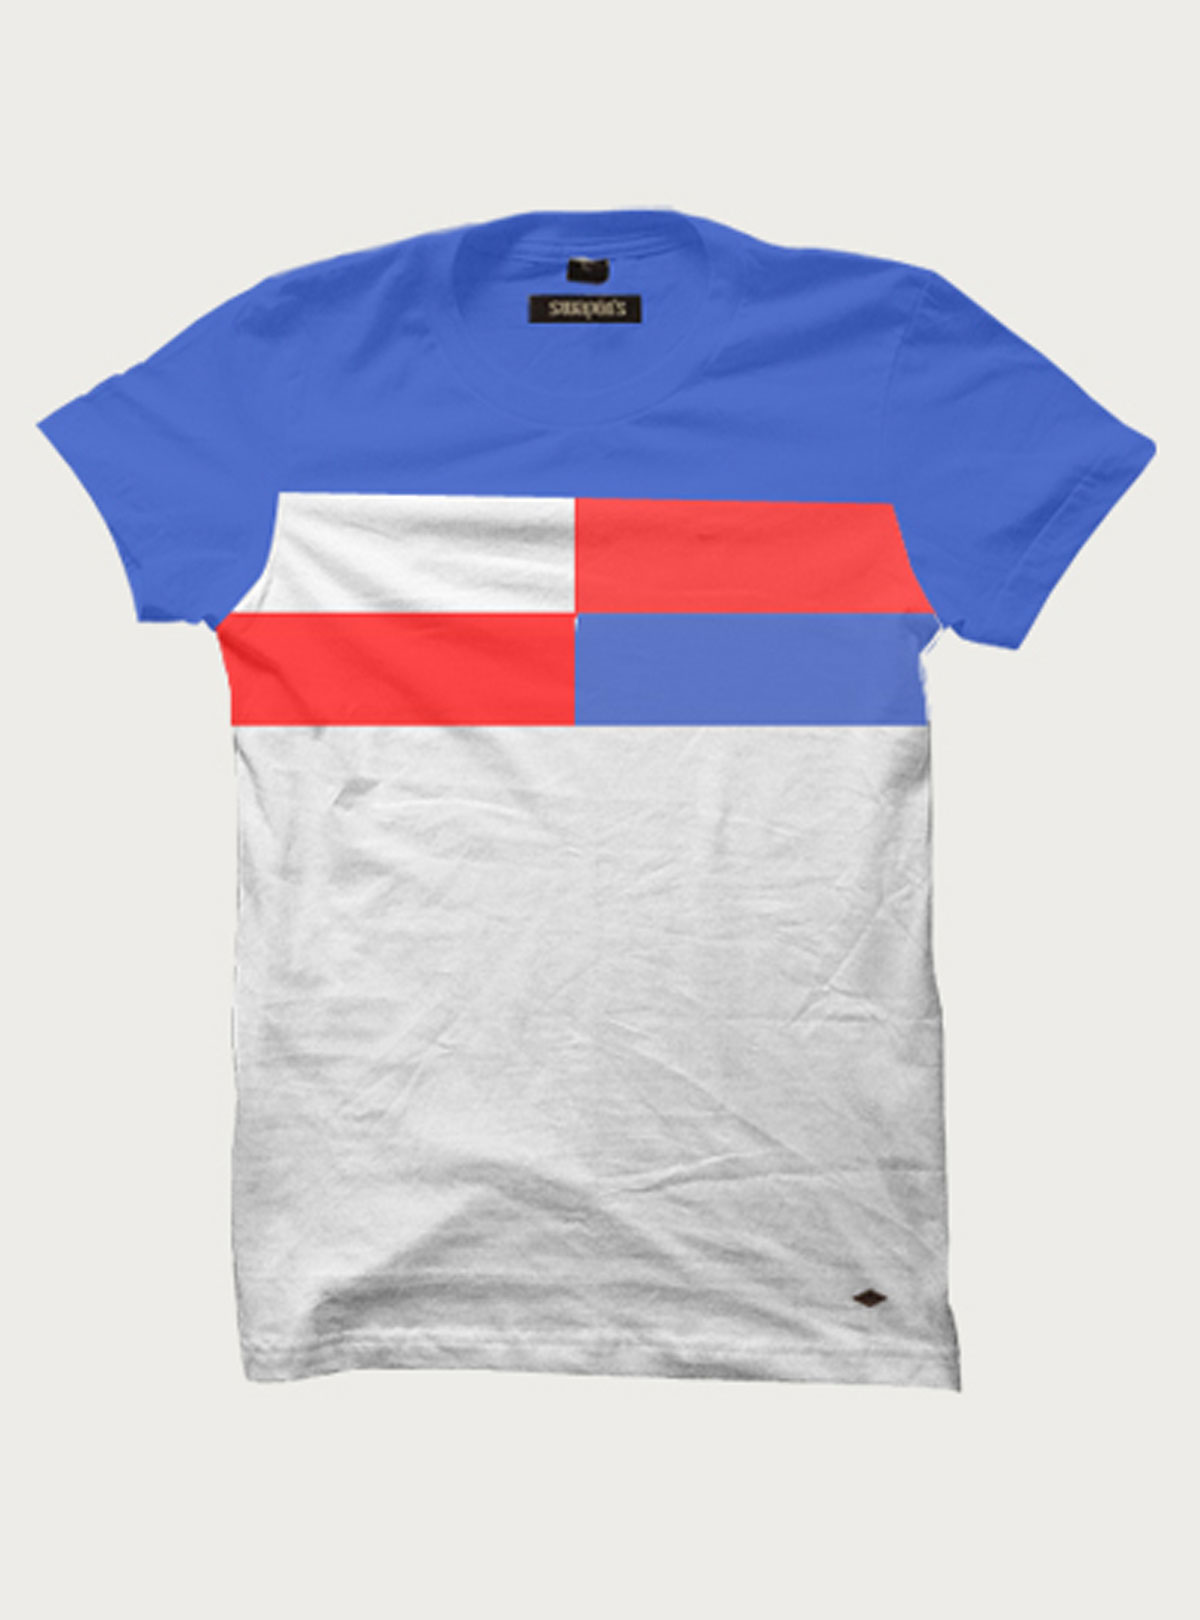 Stylish ROUND T-SHIRT by swapon's World